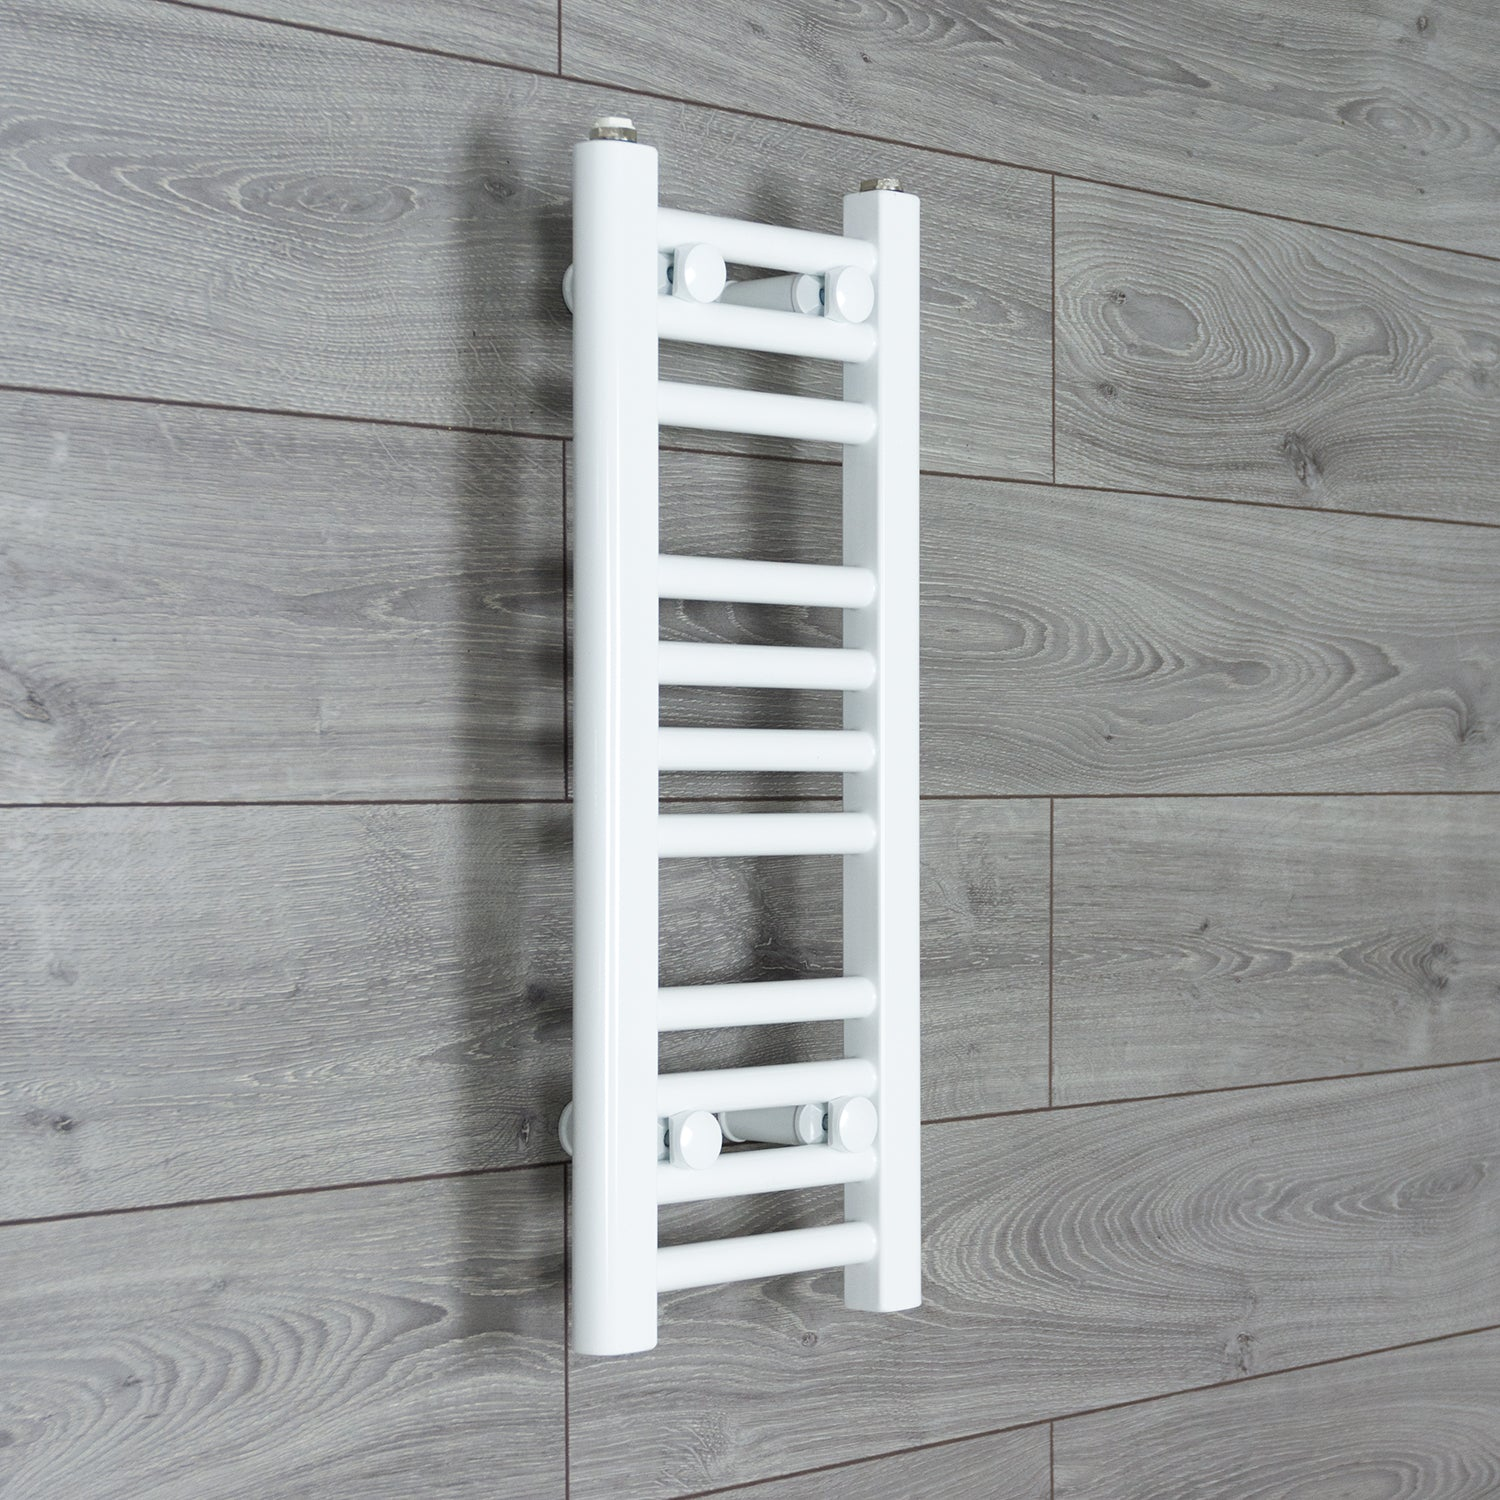 300mm Wide 600mm High Flat WHITE Pre-Filled Electric Heated Towel Rail Radiator HTR